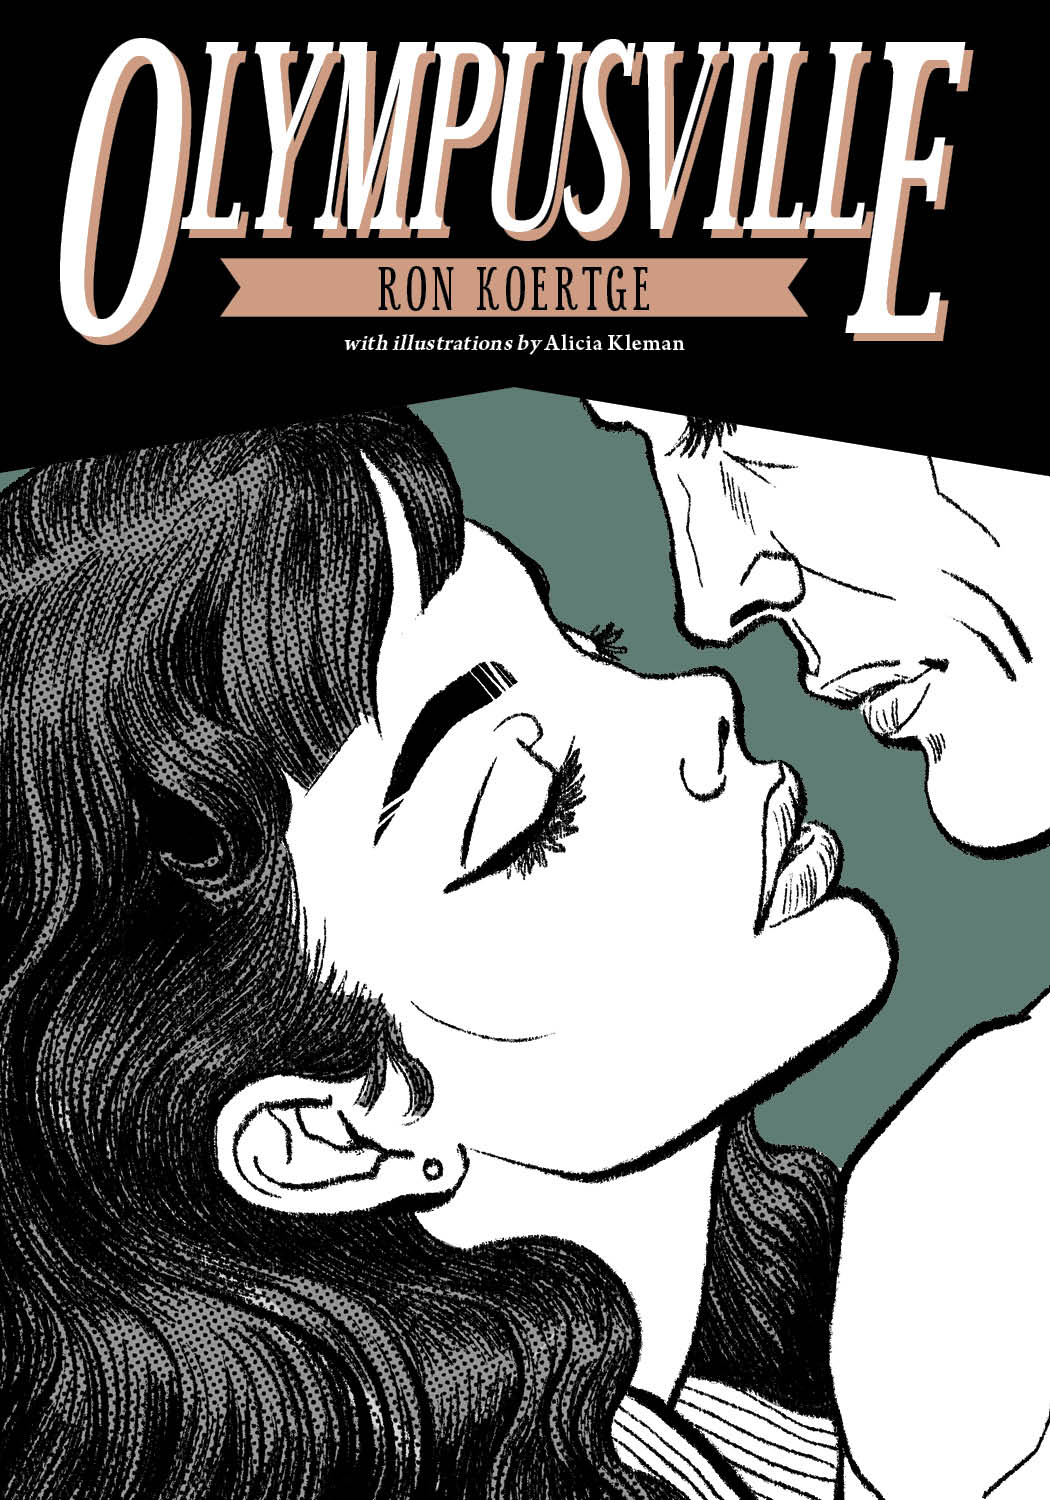 A comic book drawing of a woman and a man leaning in for a kiss and script that reads Olympusville by Ron Koertge.